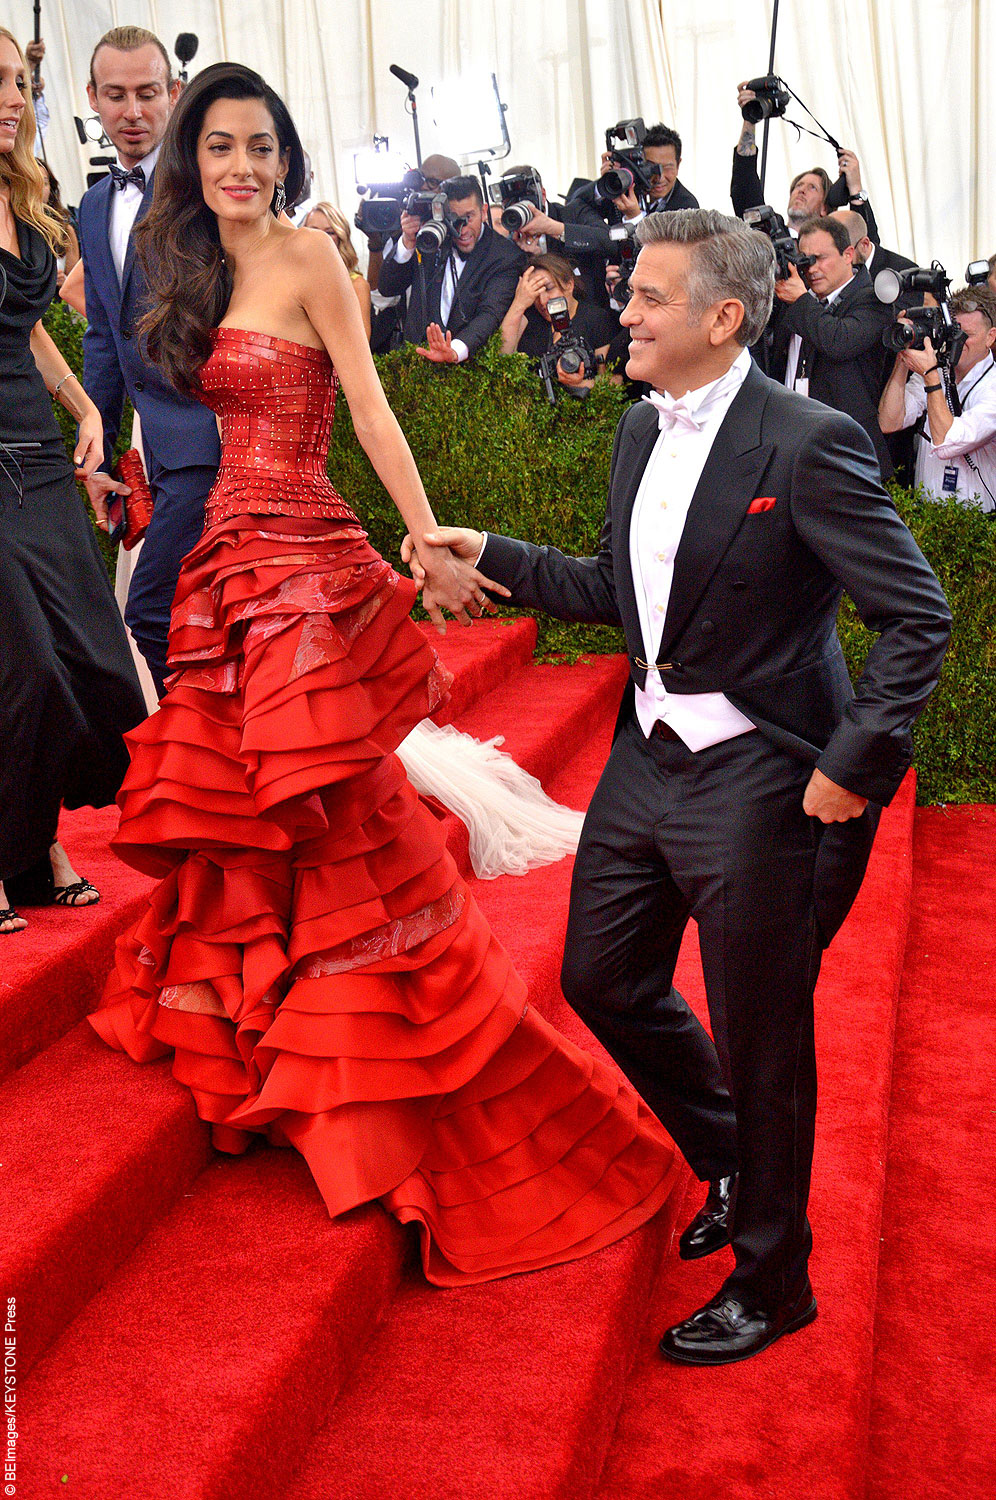 George Clooney and his wife Amal were all smiles when they hit the red carpet together. The happy couple looked beautiful together — Amal classy in a red Mason Margiela gown while George was dapper in his tux.